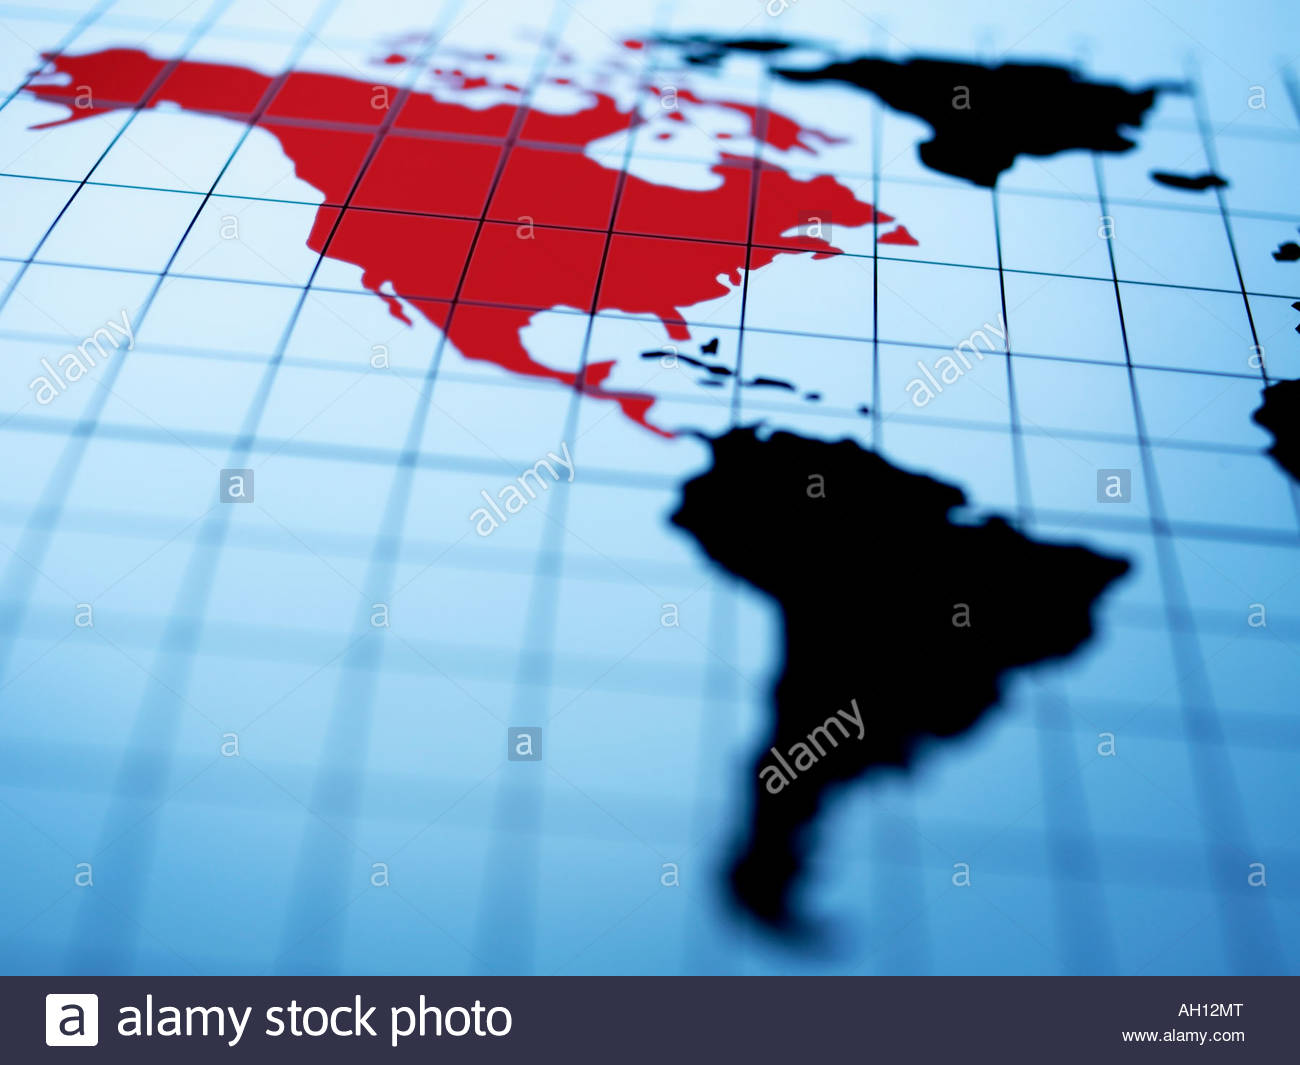 Map western hemisphere stock photos map western hemisphere stock map of western hemisphere highlighting north america stock image gumiabroncs Image collections